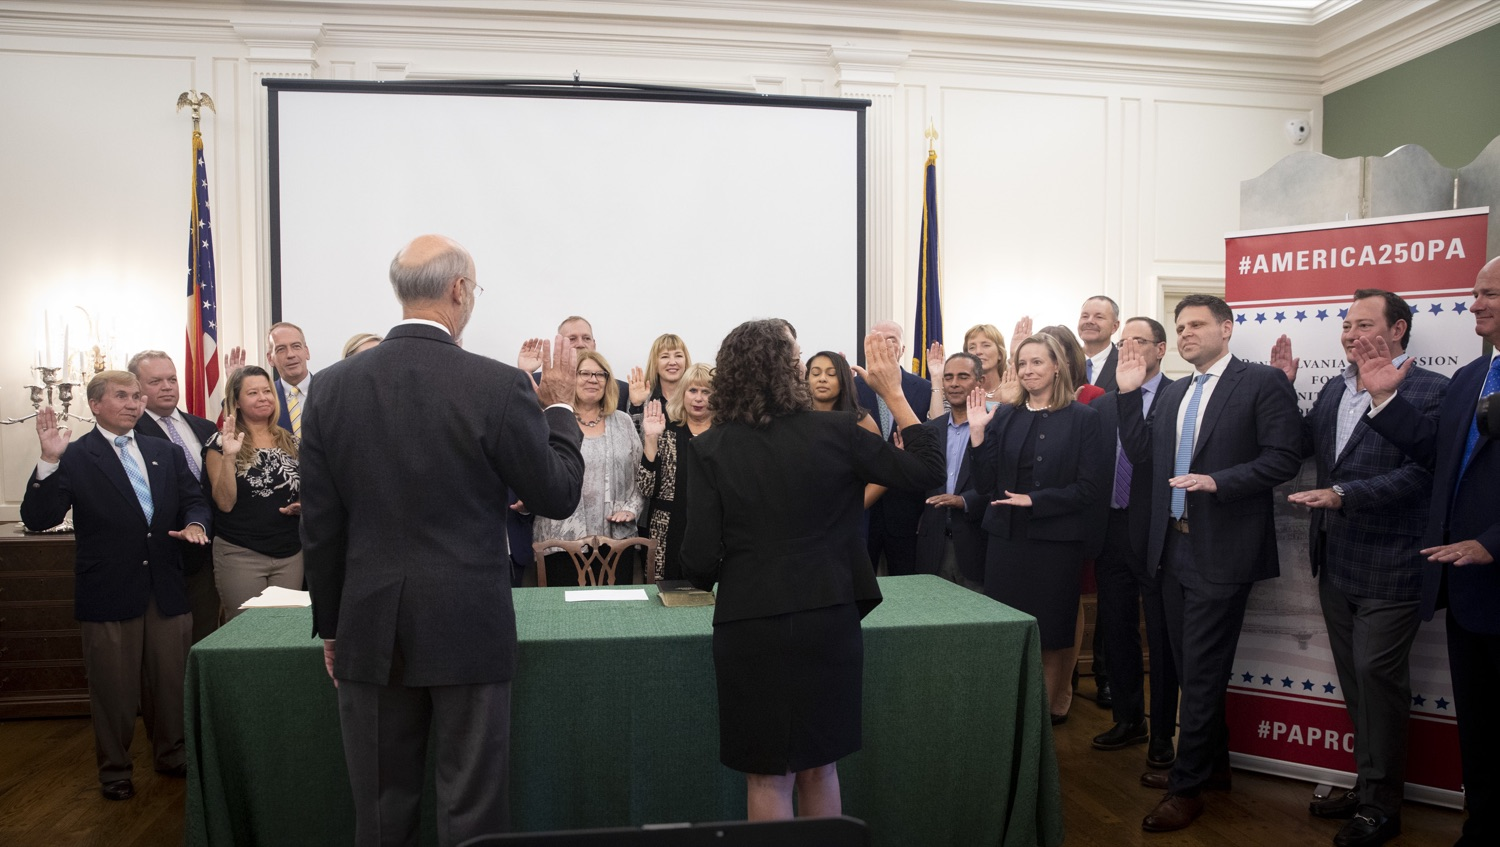 """<a href=""""http://filesource.abacast.com/commonwealthofpa/photo/17424_GOV_AMERICA250_CZ_07.JPG"""" target=""""_blank"""">⇣Download Photo<br></a>Pennsylvania officially recognized the members of the America250PA commission at a swearing-in ceremony held at the Governors Residence on September 17, 2019."""